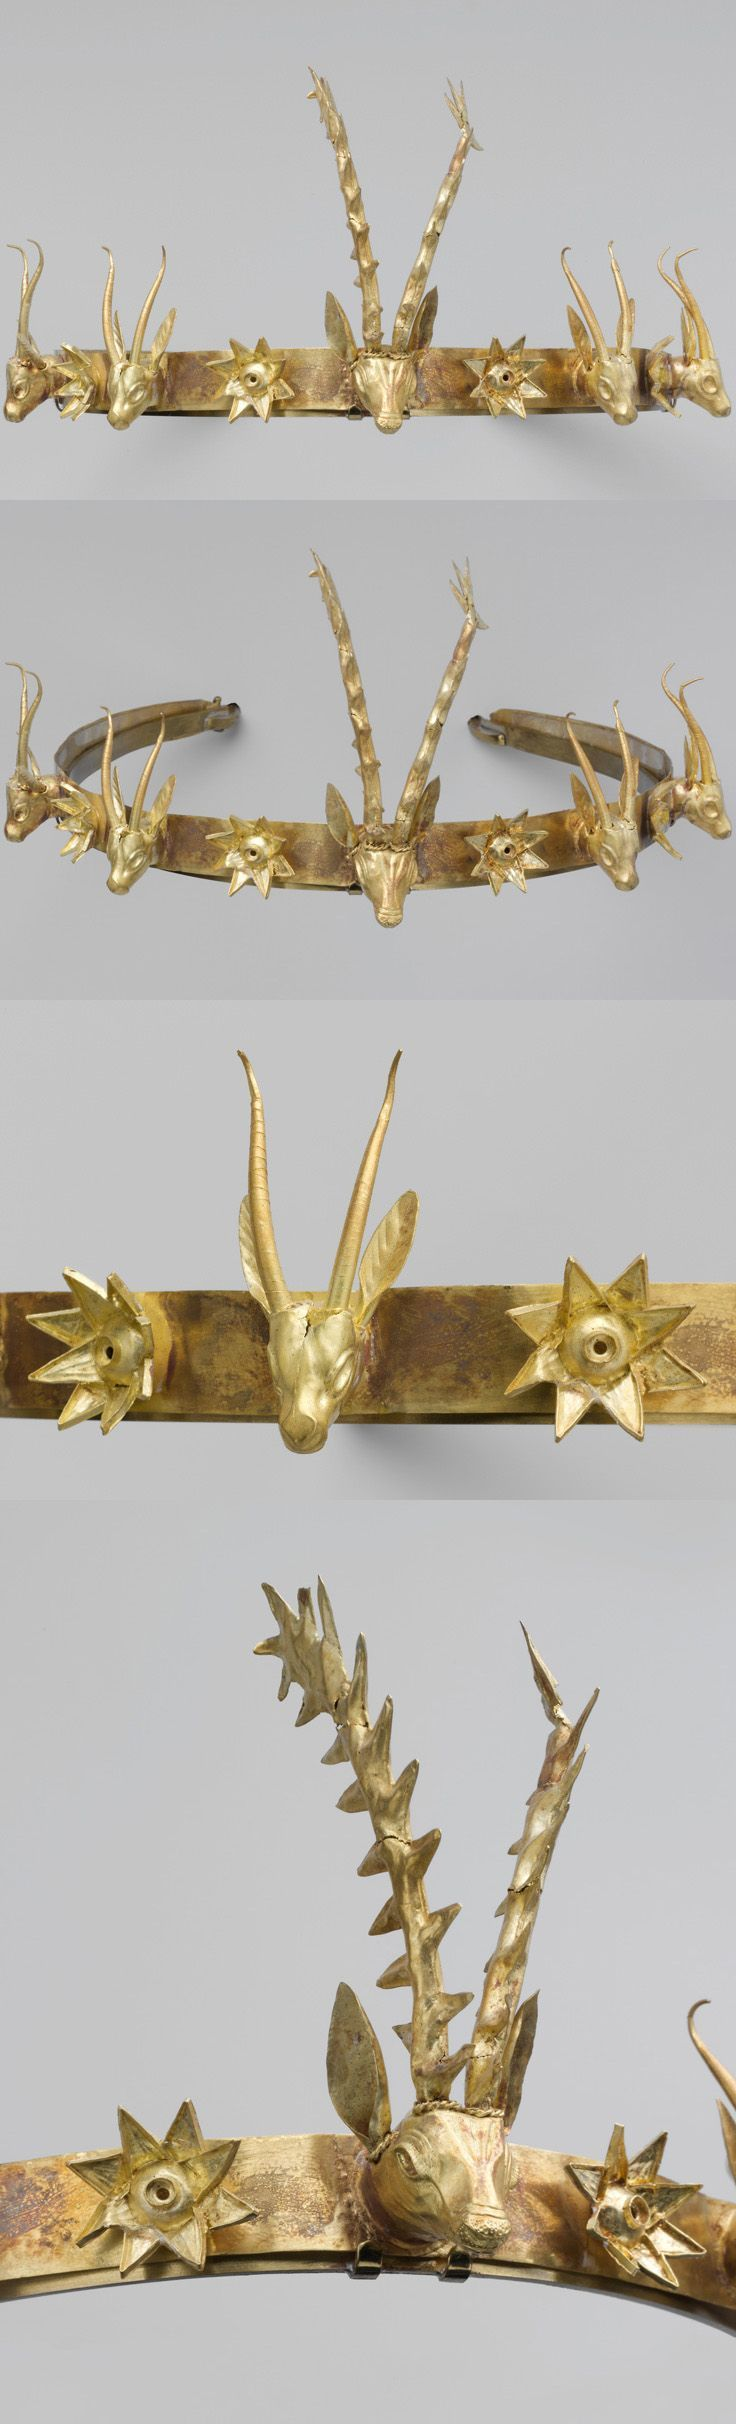 Headband with Heads of Gazelles and a Stag Between Stars or Flowers Period: Second Intermediate Period Dynasty: Dynasty 15 Date: ca. 1648–1540 B.C. Geography: From Egypt; Possibly from Eastern Delta Medium: Gold Dimensions: h. of central stag 8.9 cm (3 1/2 in); l. of headband 49.5 cm (19 1/2 in)